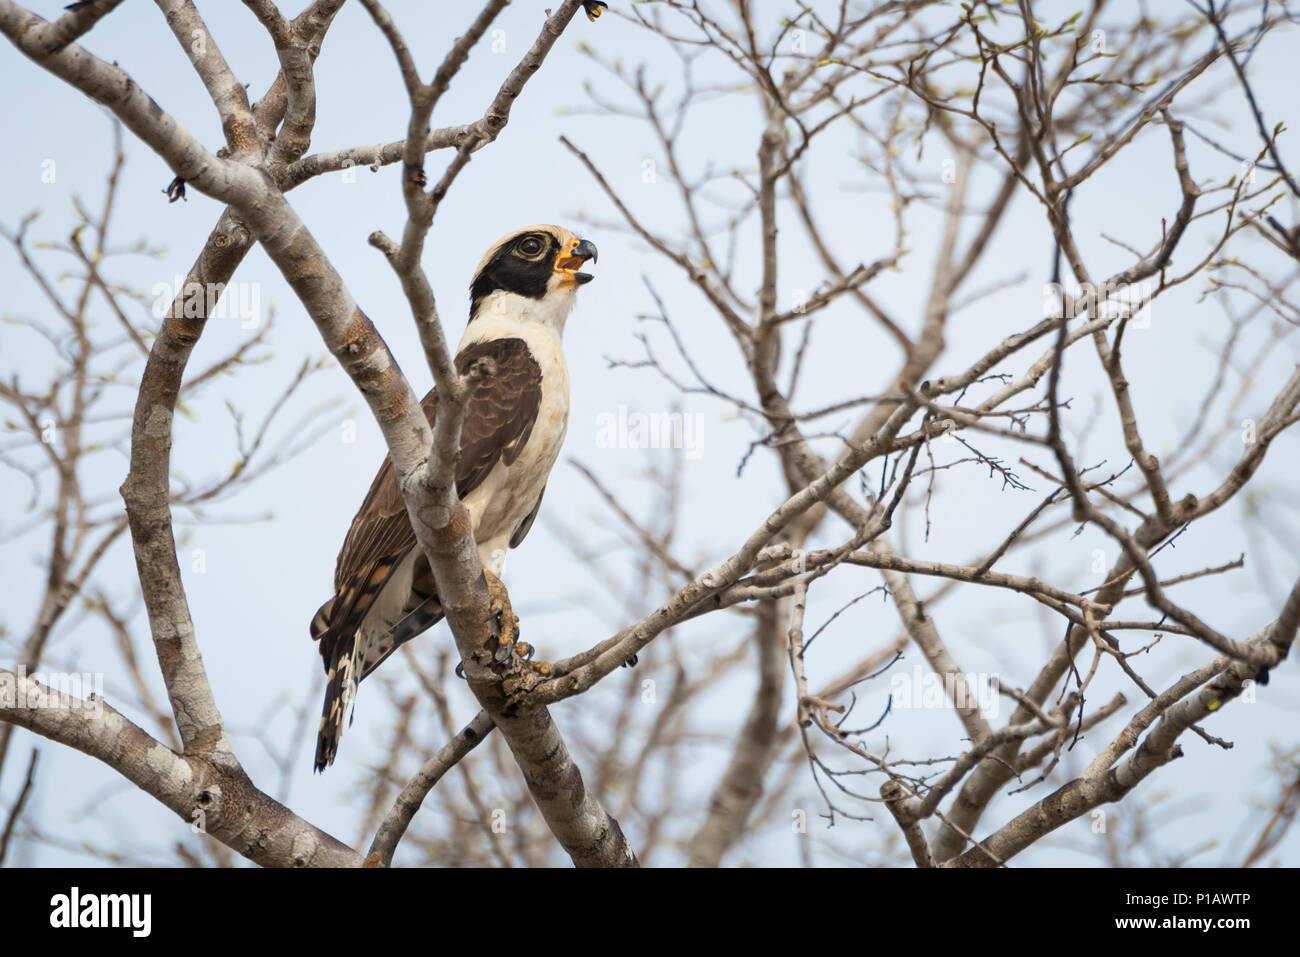 A Laughing Falcon (Herpethotheres cachinnans) from the Pantanal - Stock Image